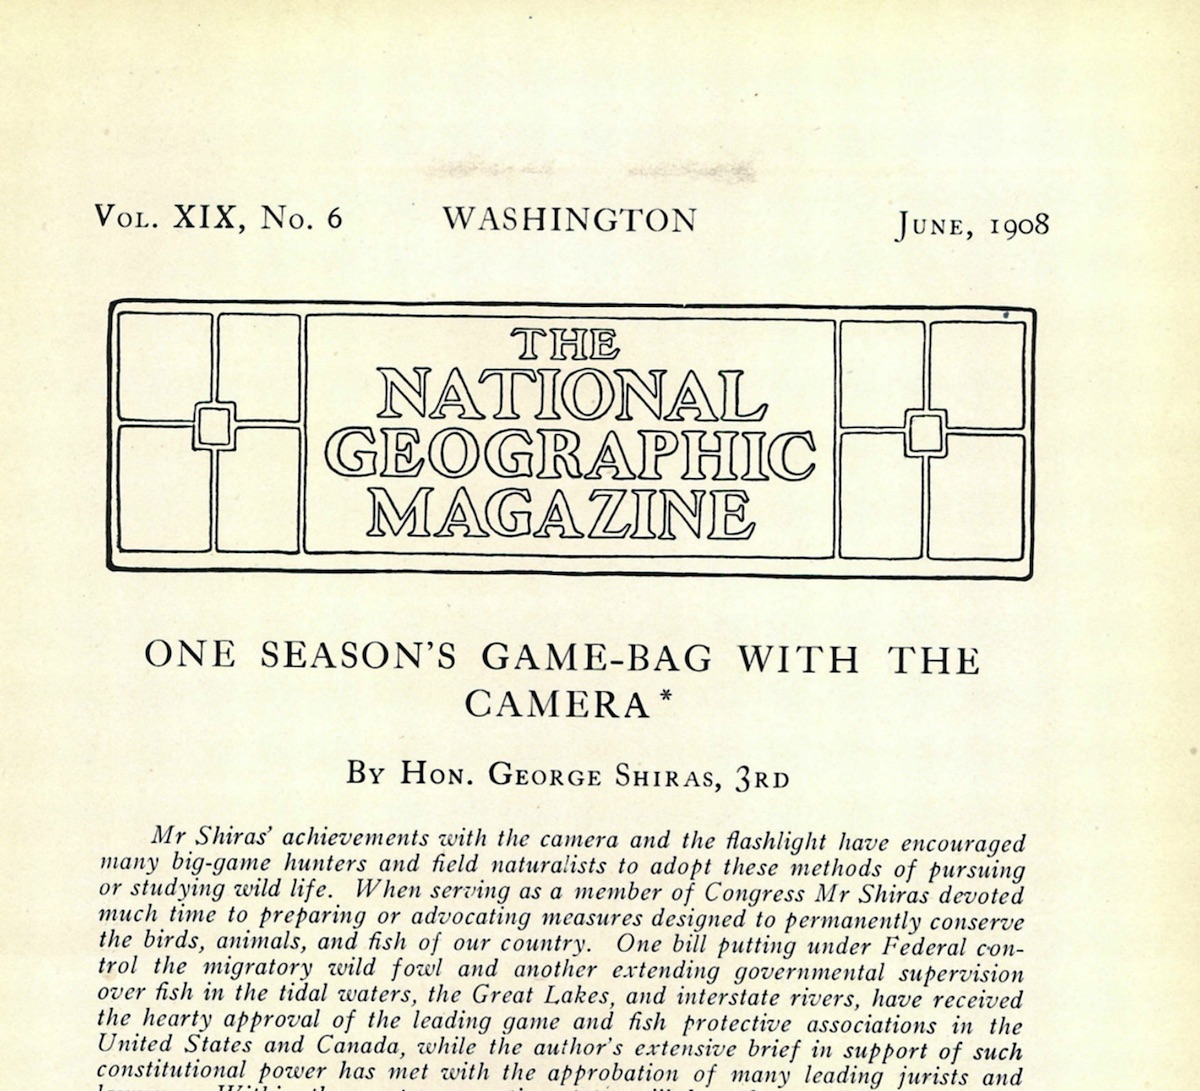 National Geo 1908 article